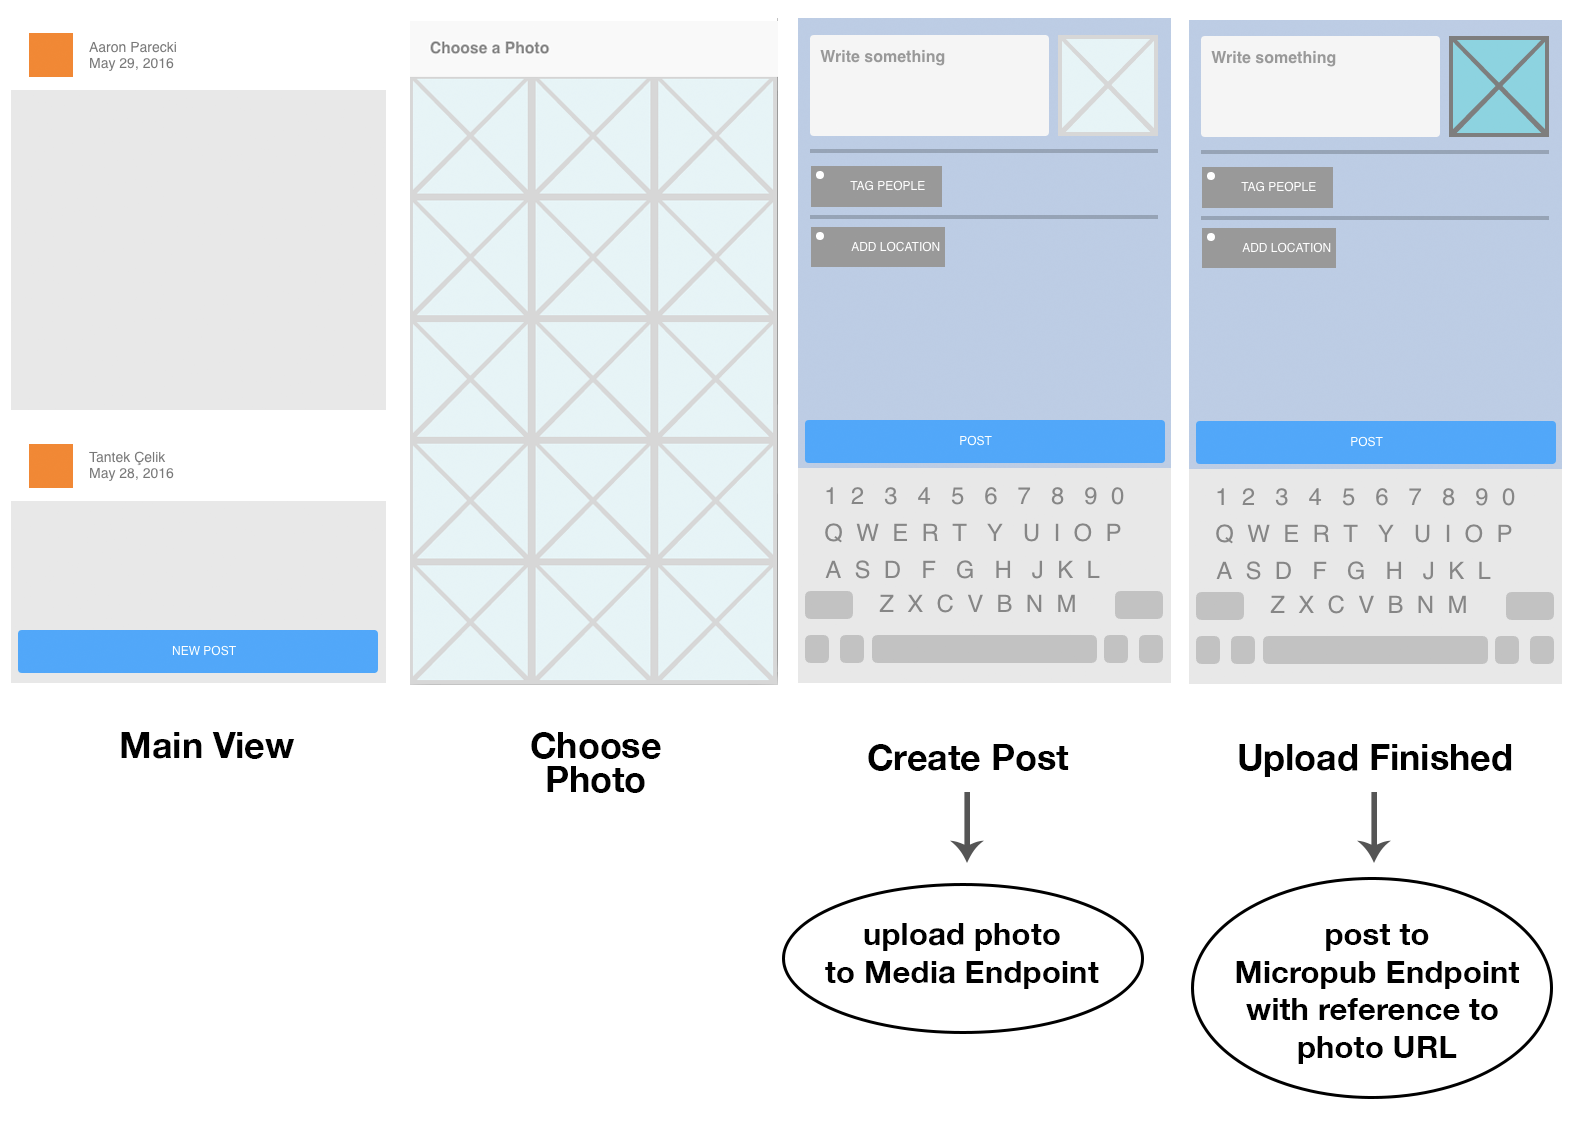 A four-panel diagram of an application illustrating the main view of the application, choosing a photo to upload, uploading the photo to the Media Endpoint while the user enters text, then posting the post contents and photo URL to the Micropub endpoint.